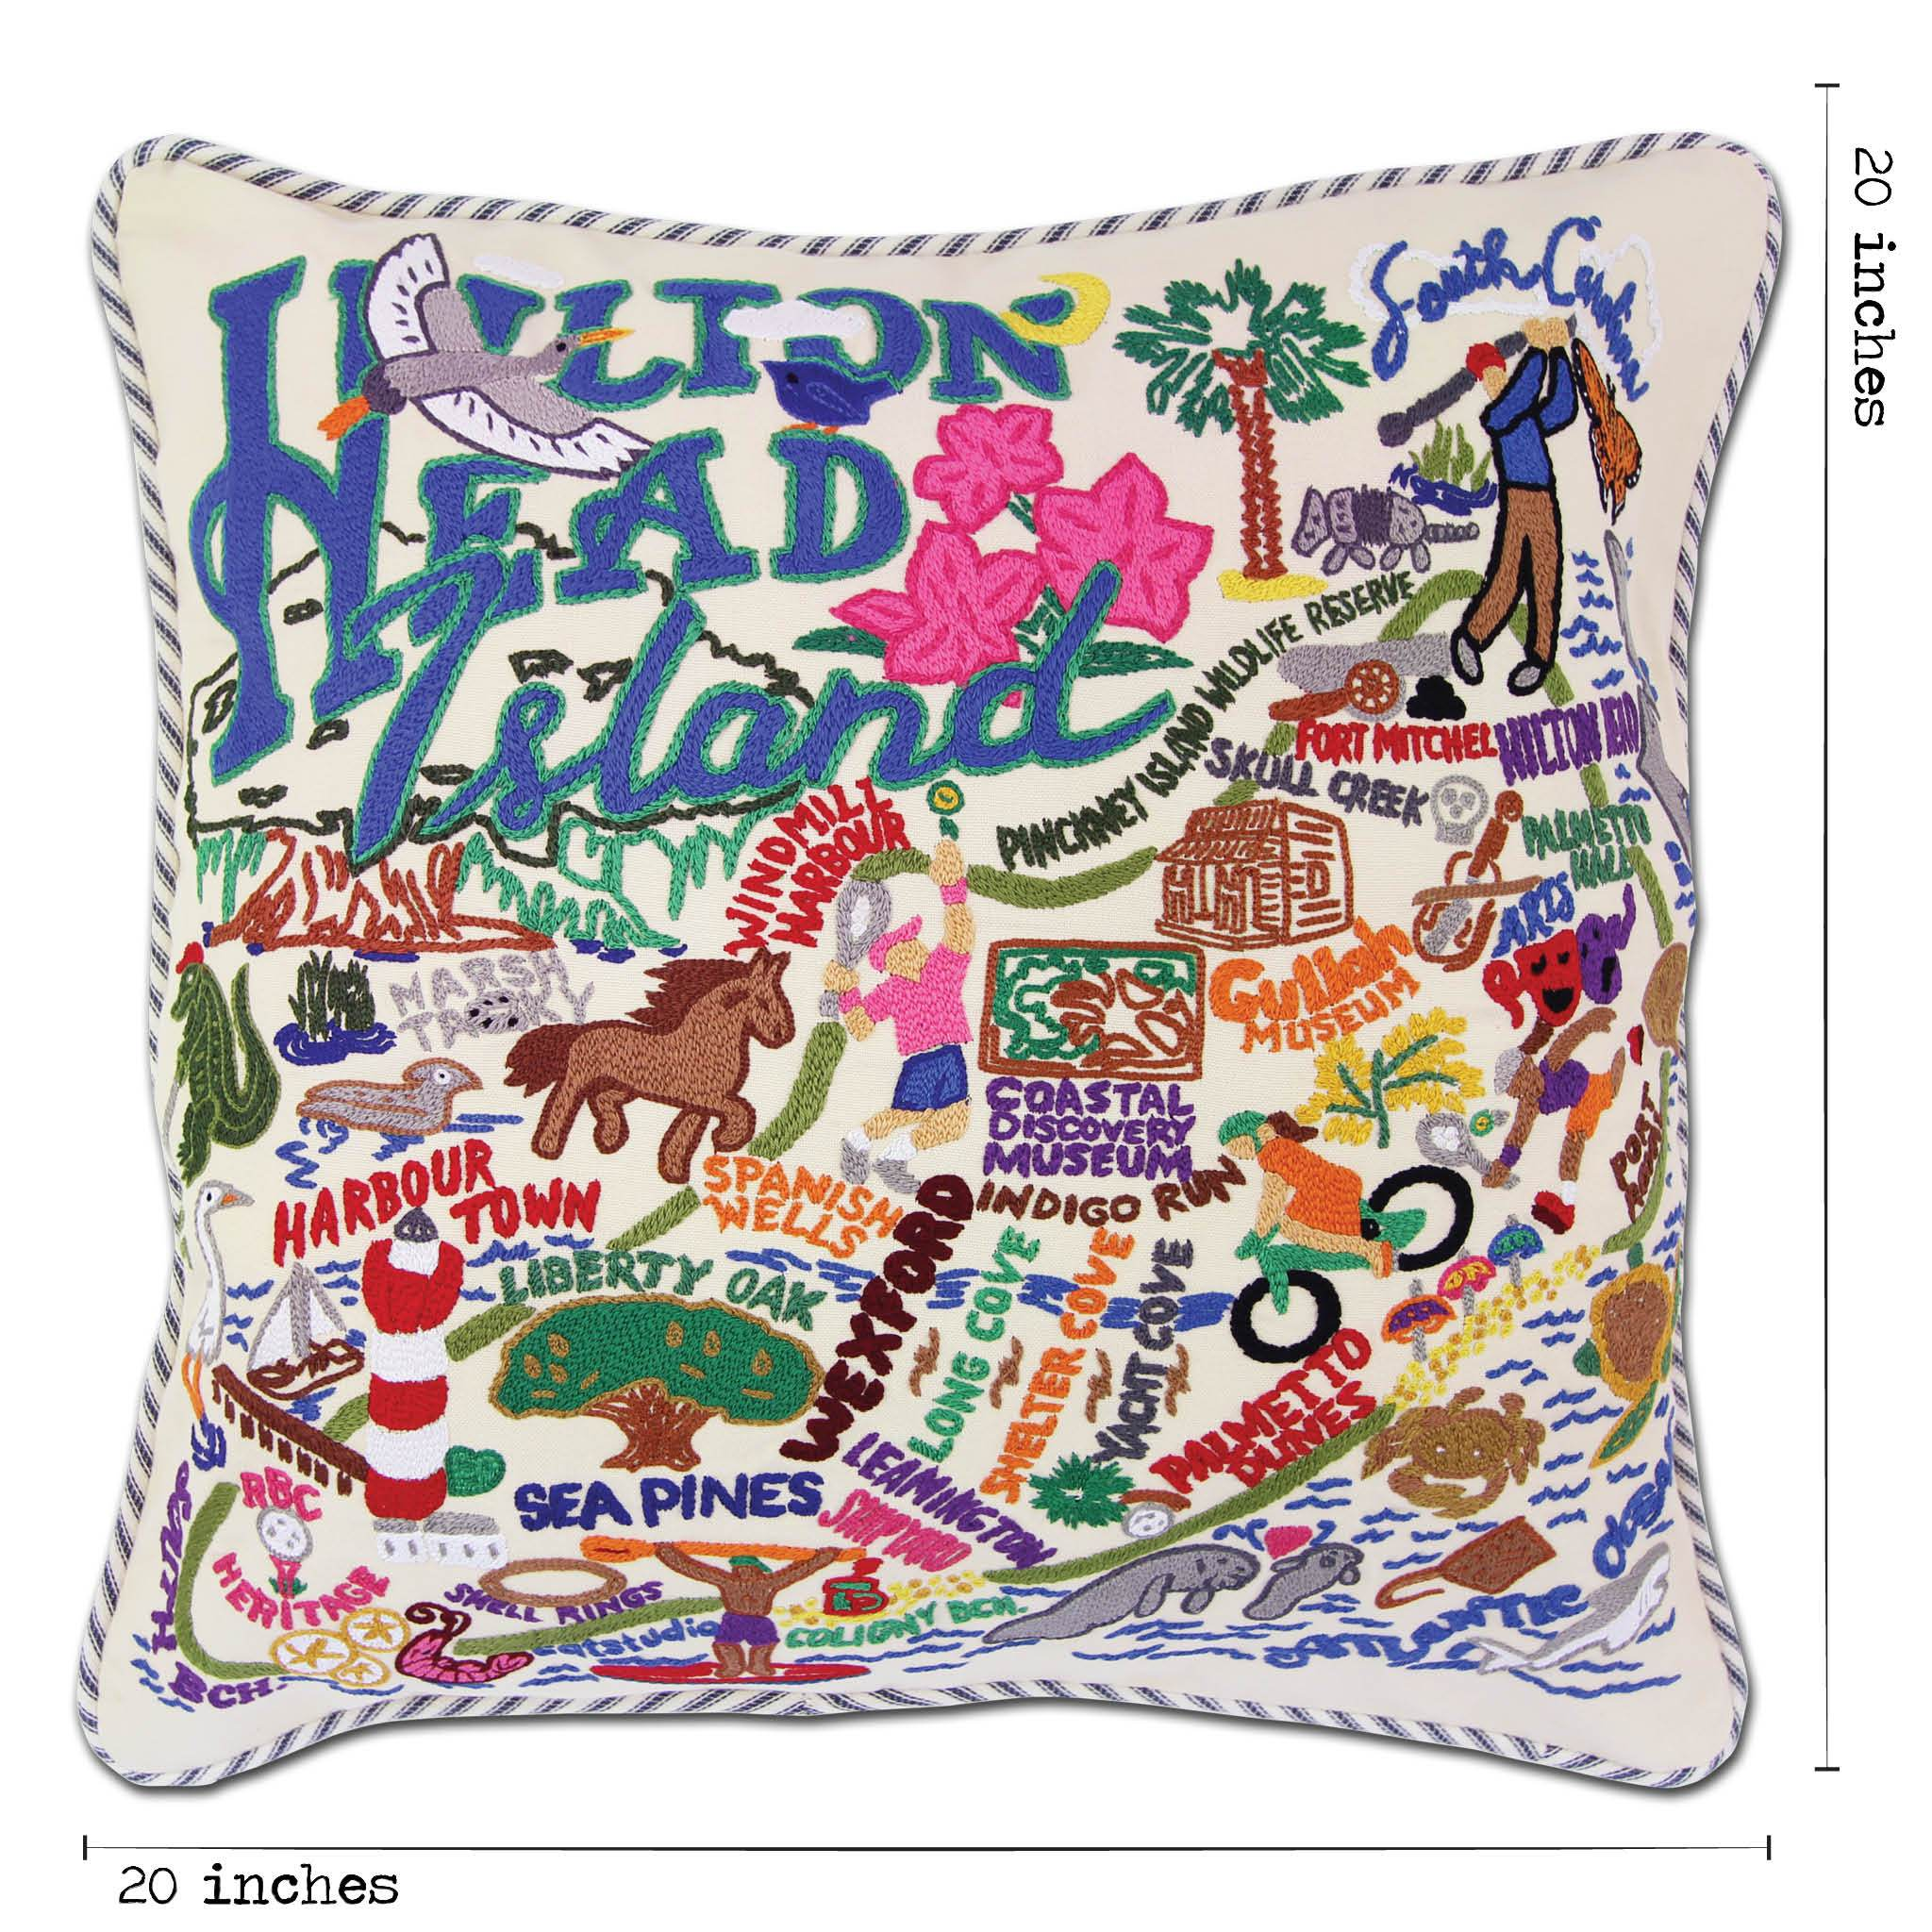 Hilton Head Hand Embroidered Pillow South Carolina Collection By Catstudio Catstudio